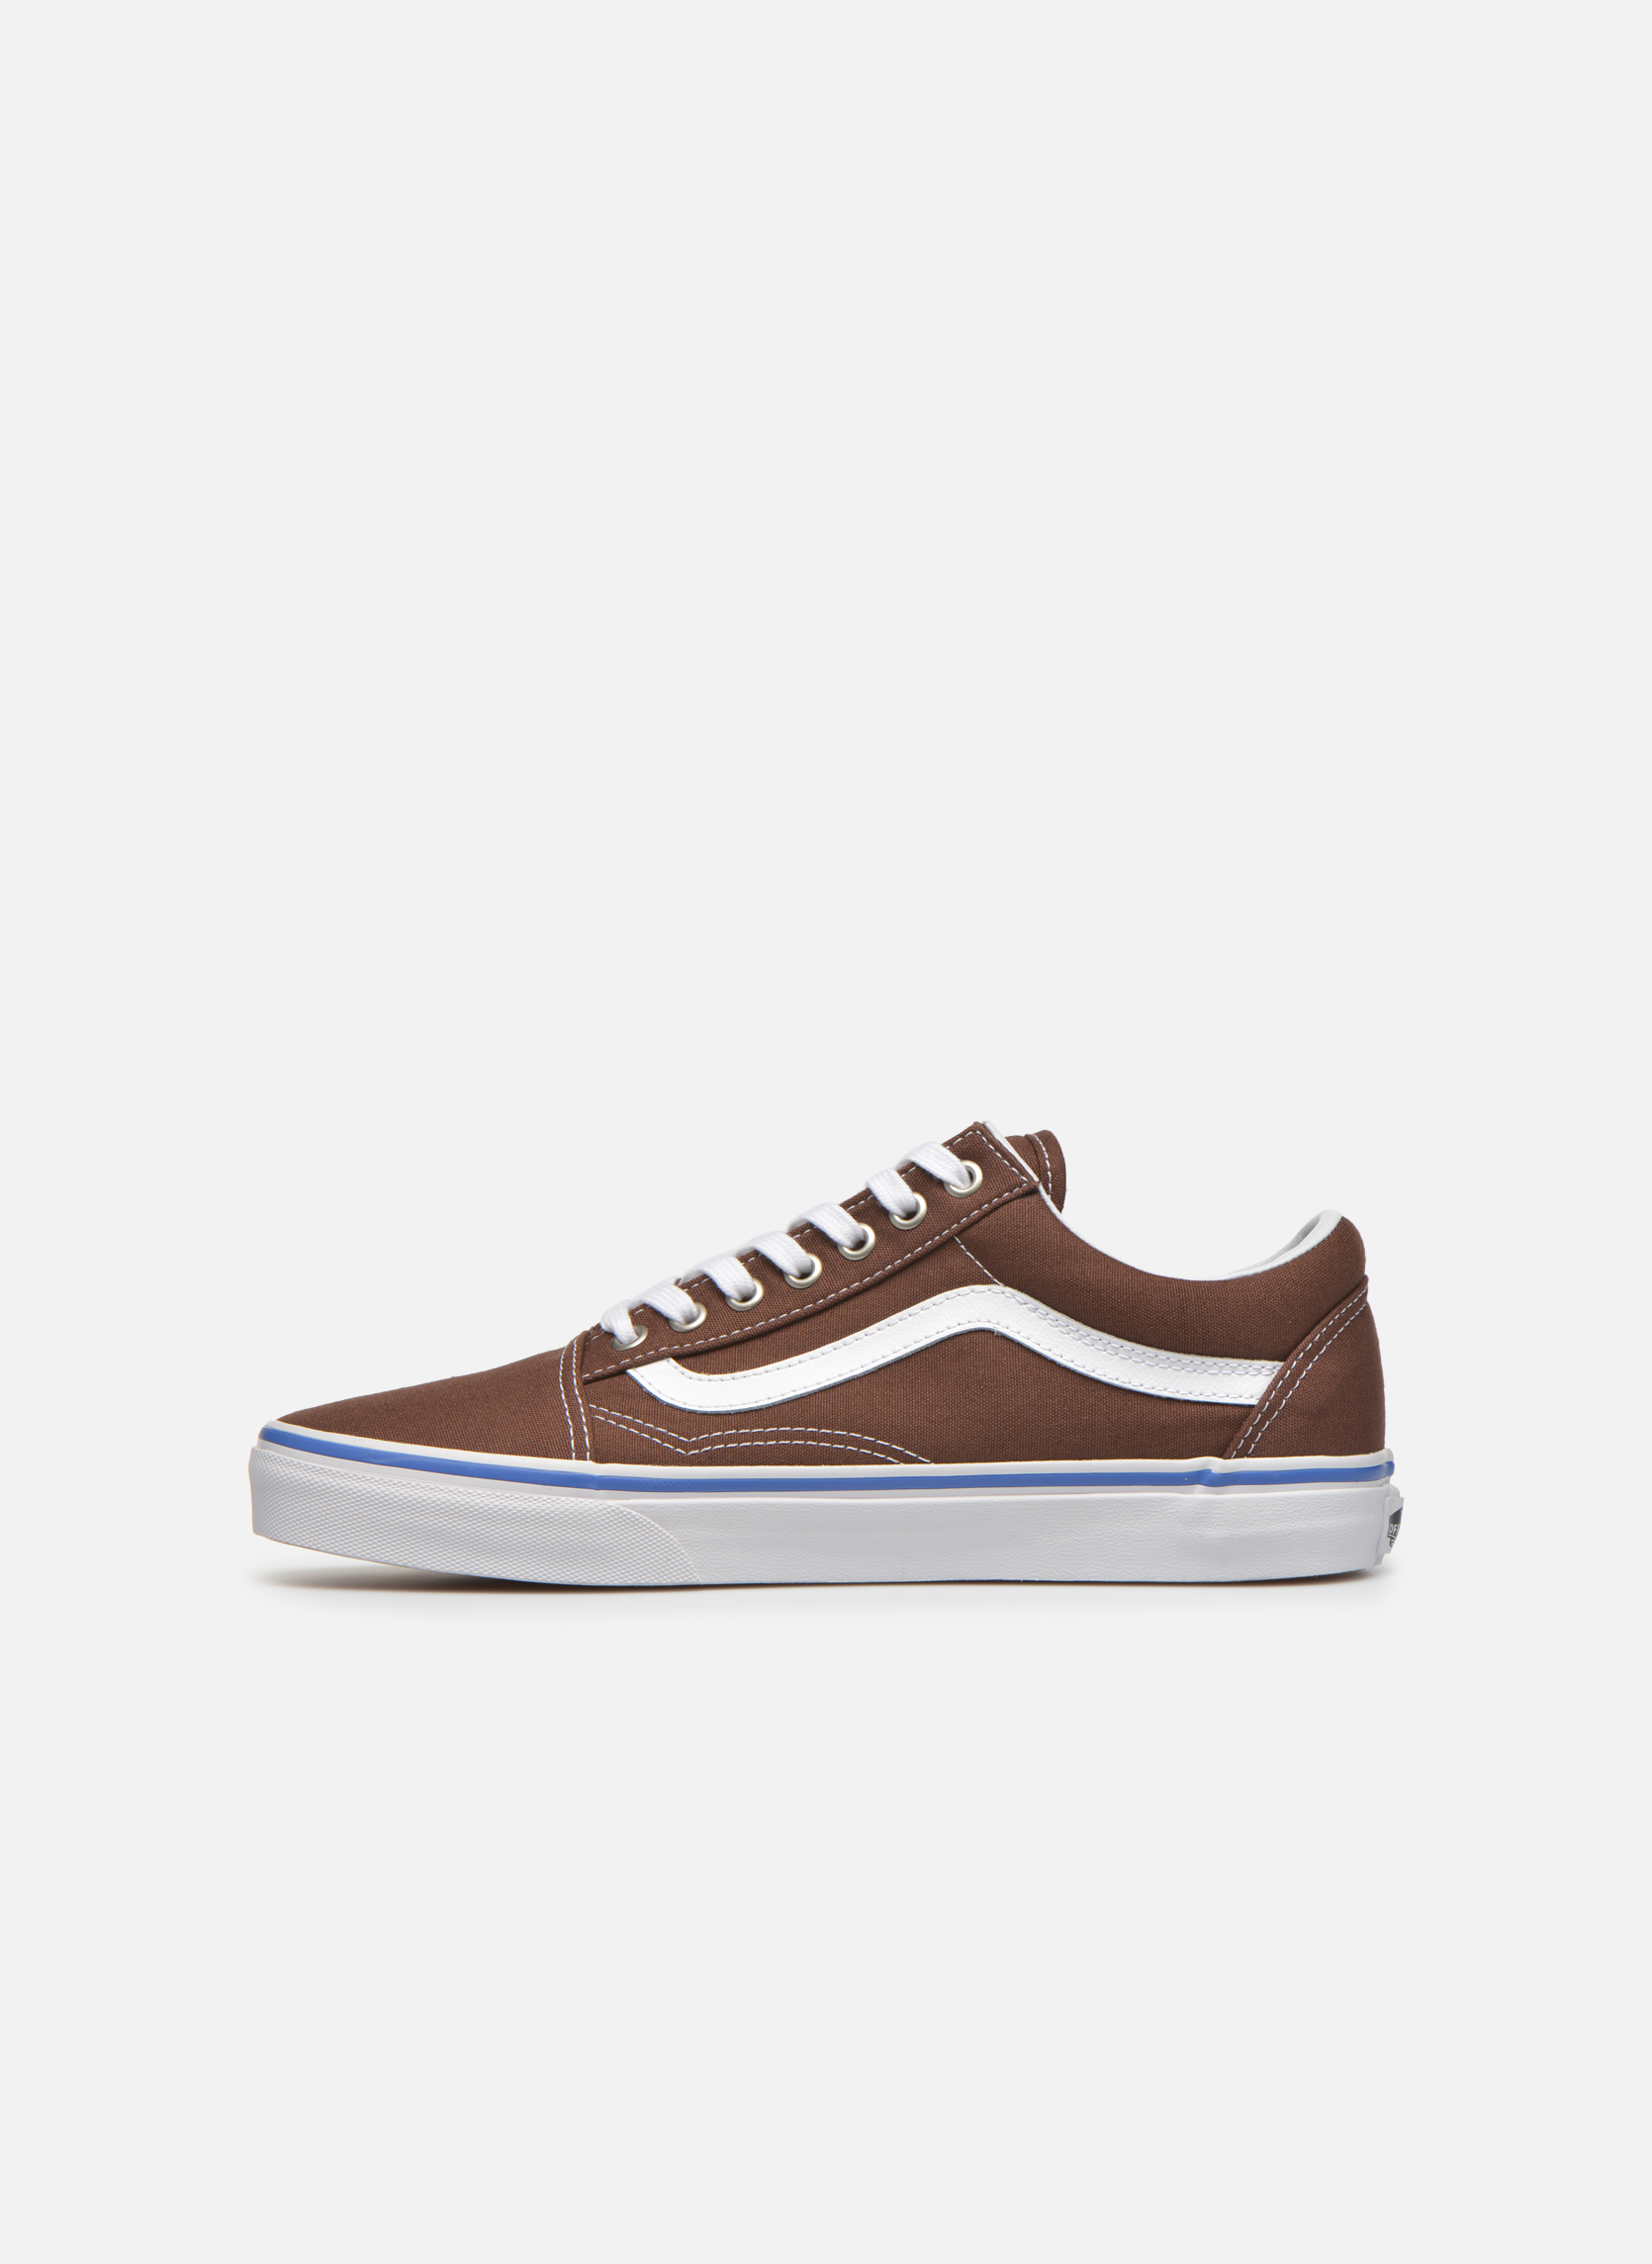 Baskets Vans Old Skool Marron vue face